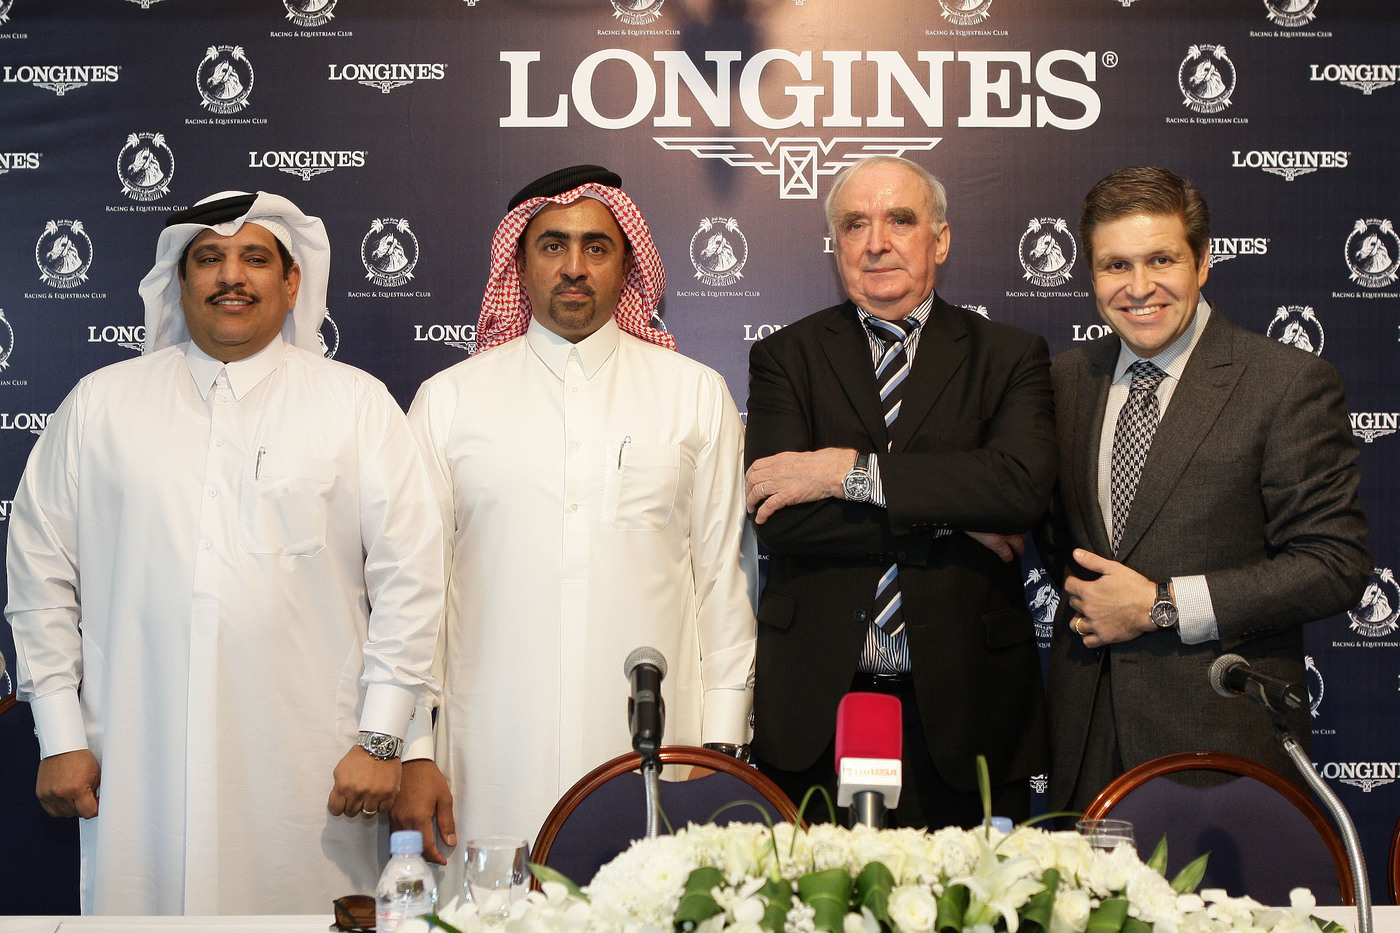 Longines Flat Racing Event: Longines spreads its elegance throughout the equestrian world: A new partnership with the distinguished Qatar Racing and Equestrian club 1